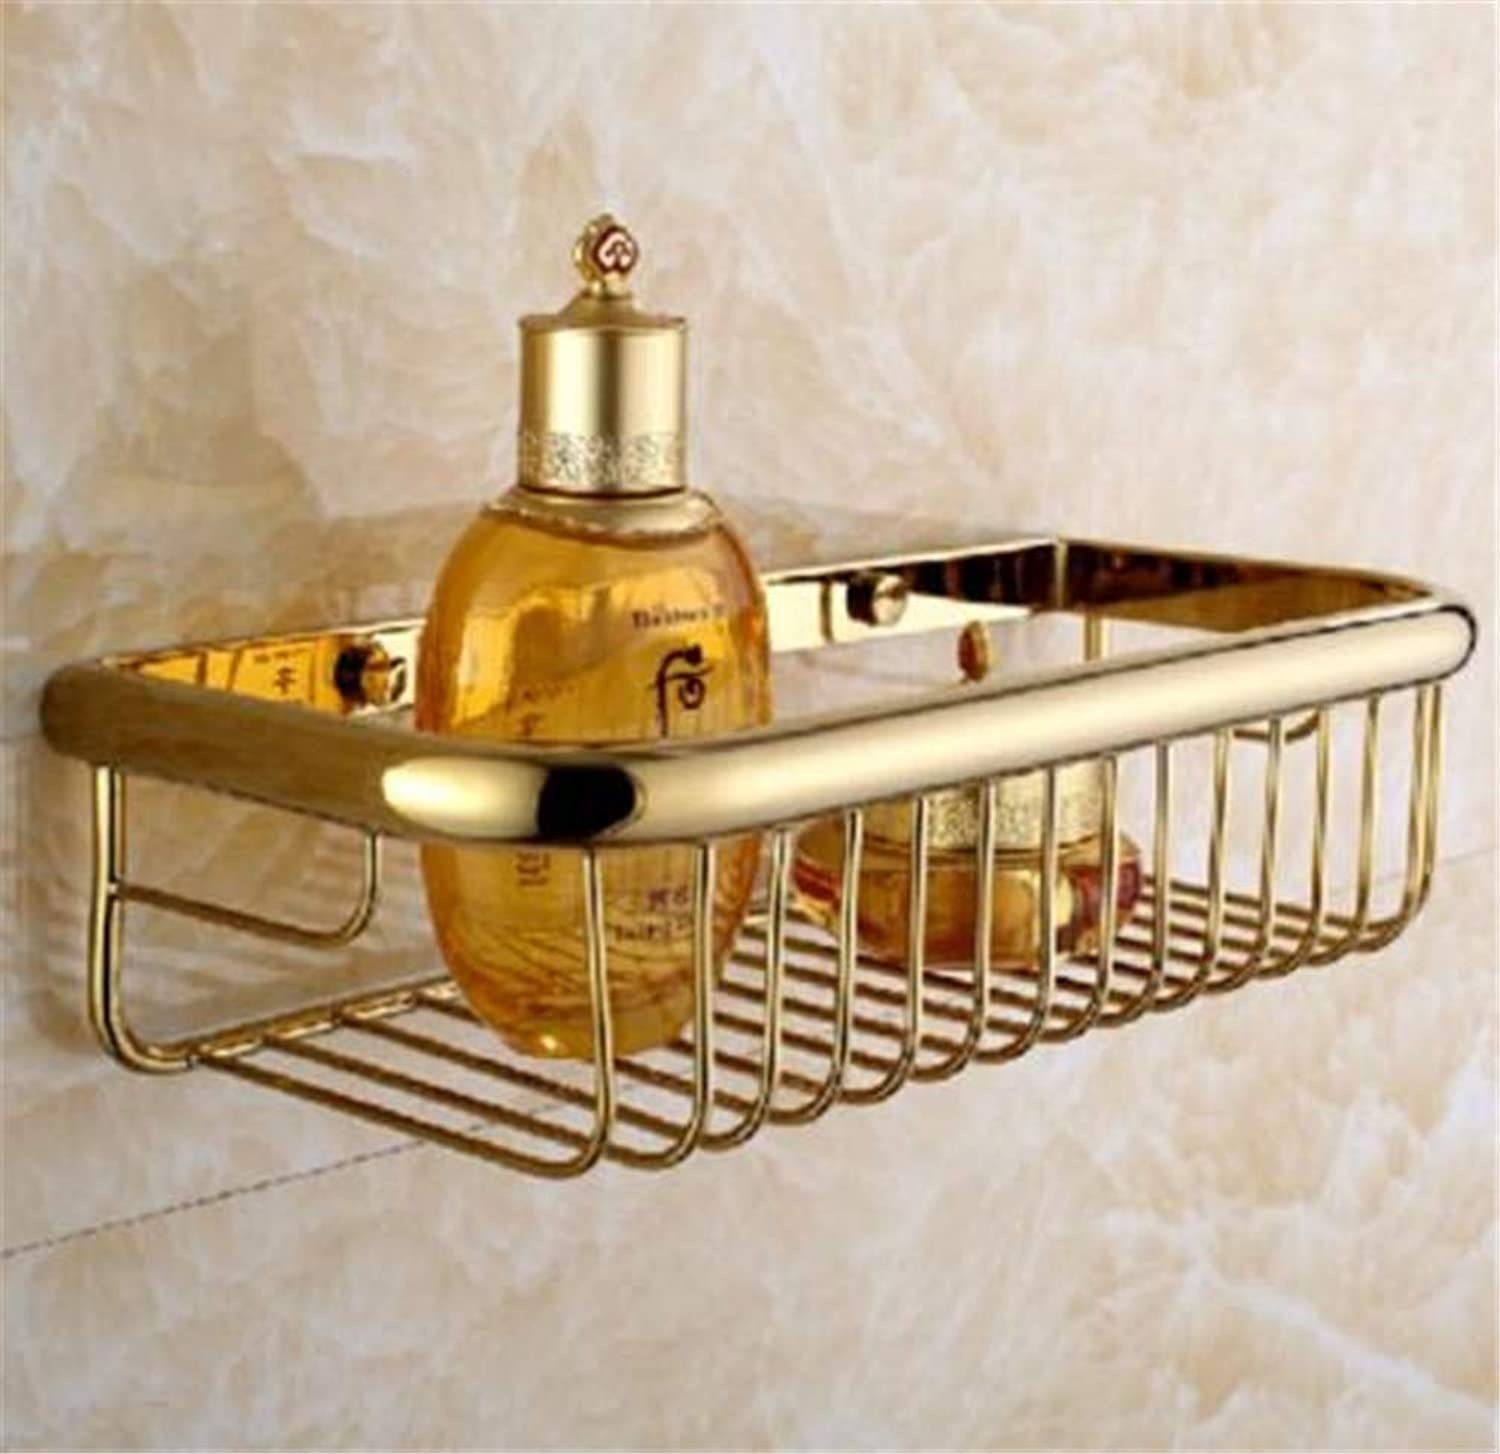 LUDSUY Antique Solid Brass Bathroom Hardware Sets gold Polished Bathroom Accessories Wall Mounted Crystal Bathroom Products,I